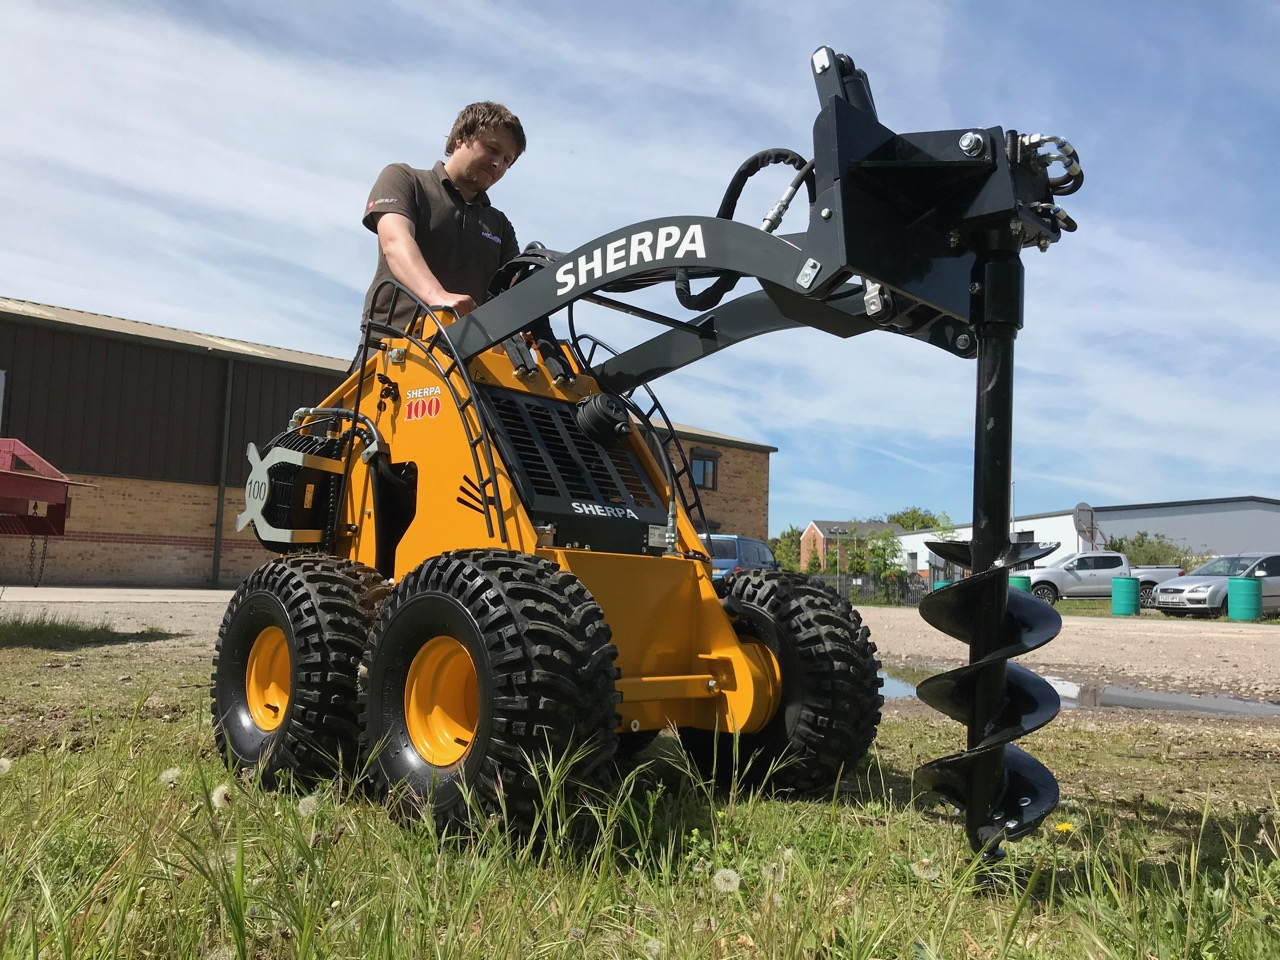 Sherpa 100 Diesel Mini Skidsteer Loader with Auger Earth Drill